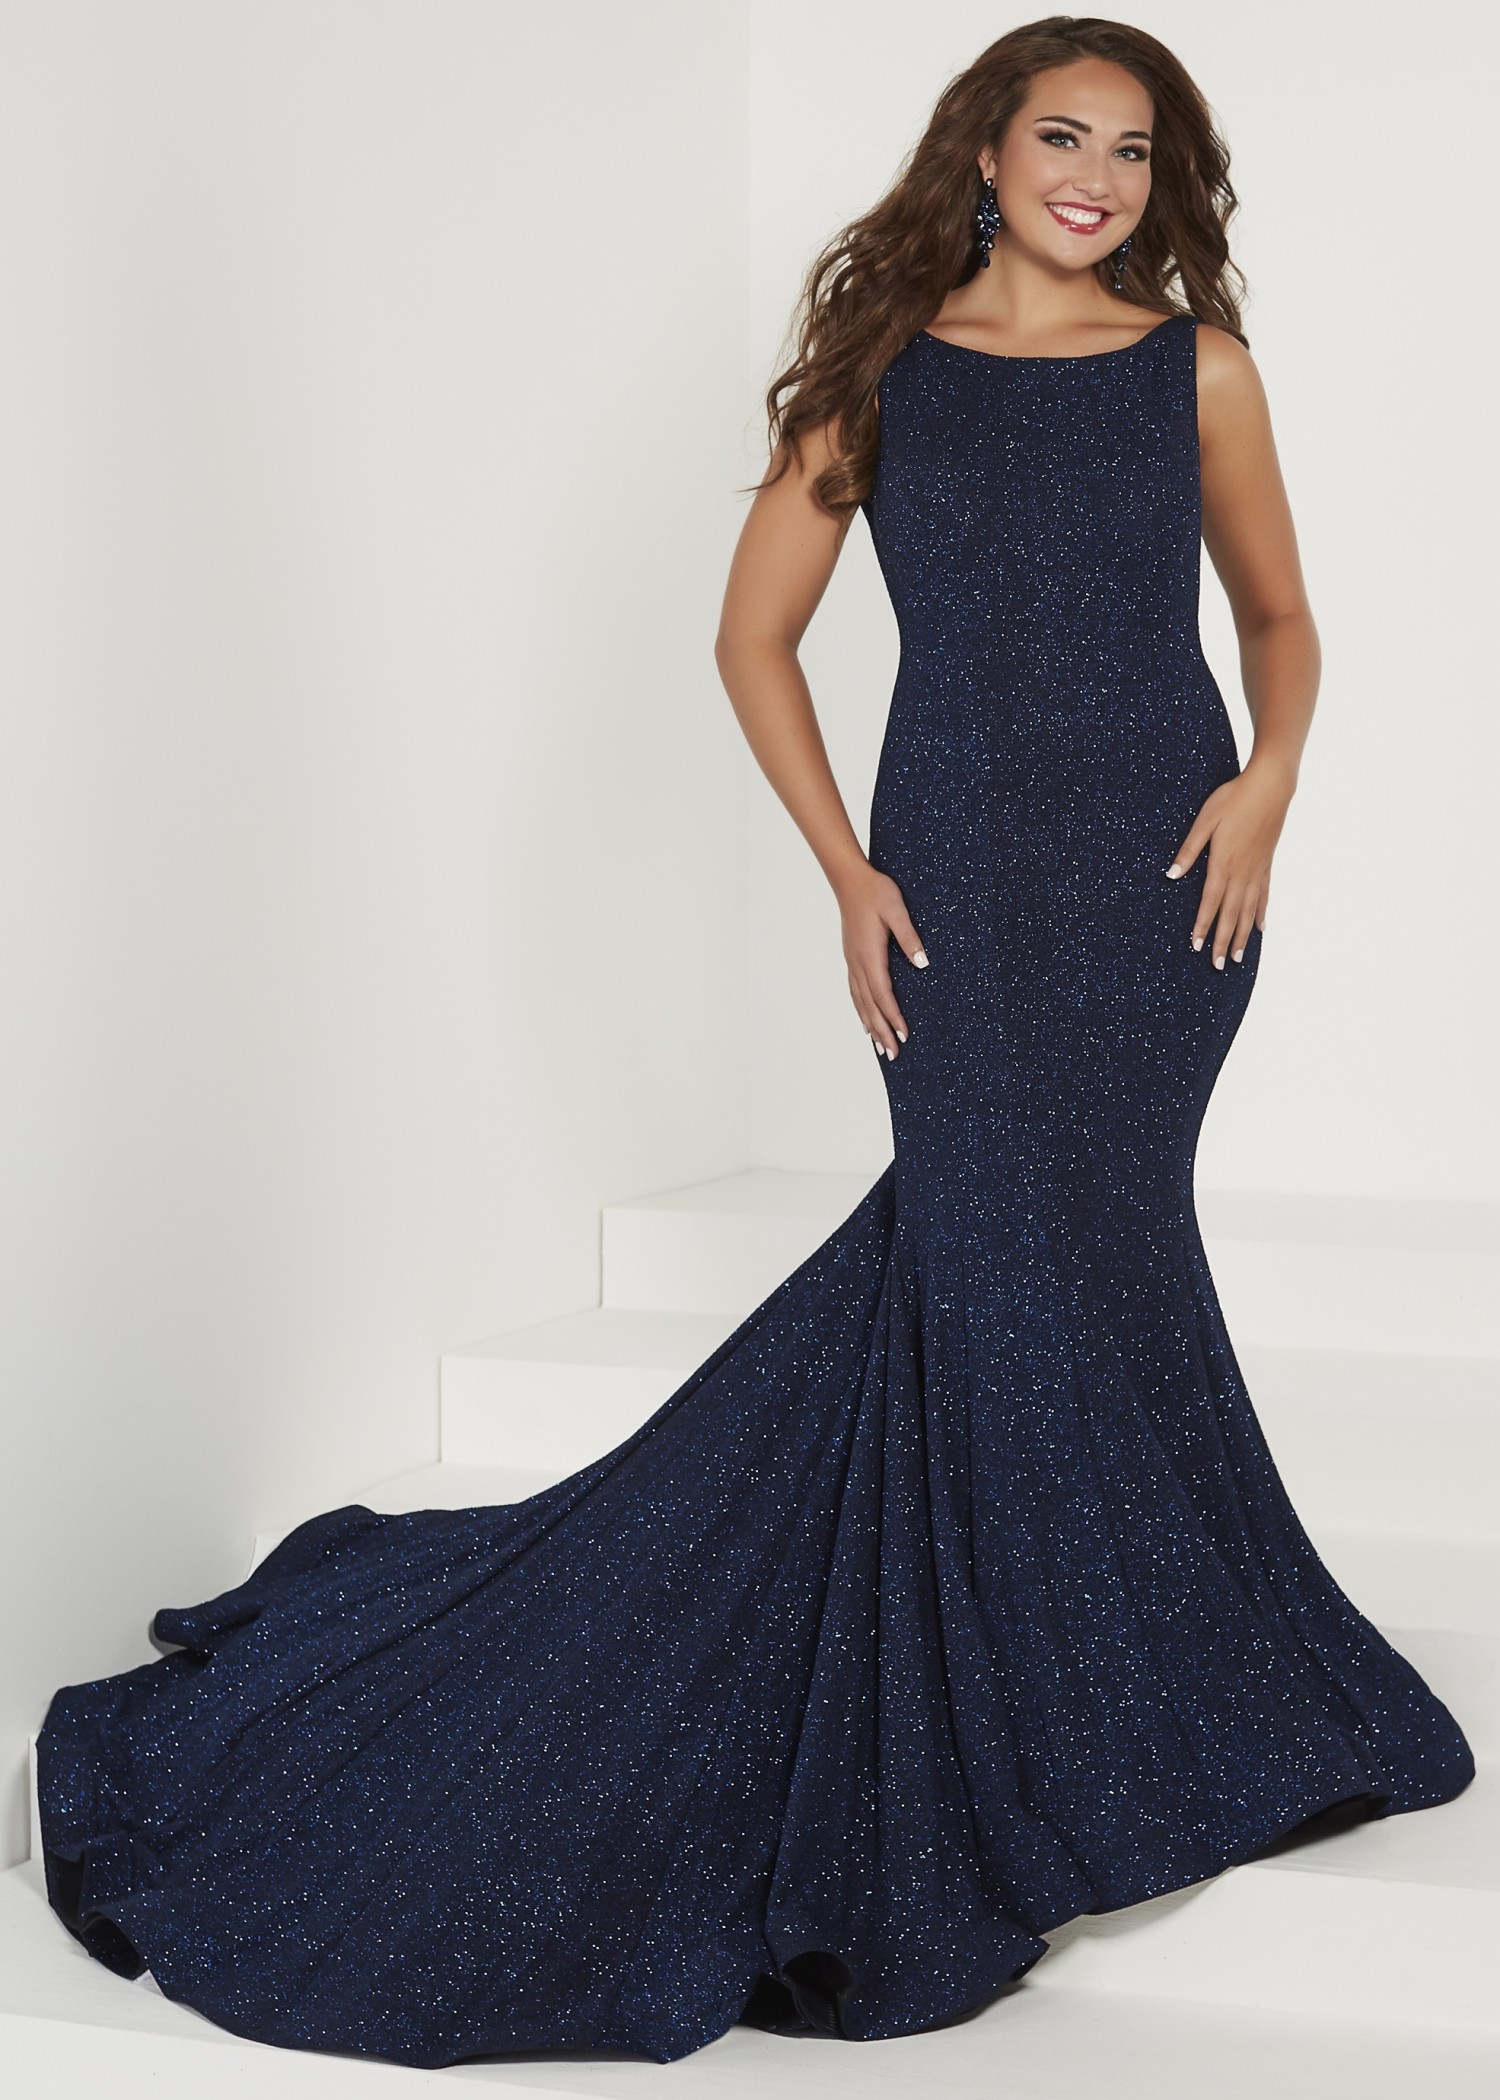 Tiffany Designs 16377 Glitter Jersey Mermaid Gown